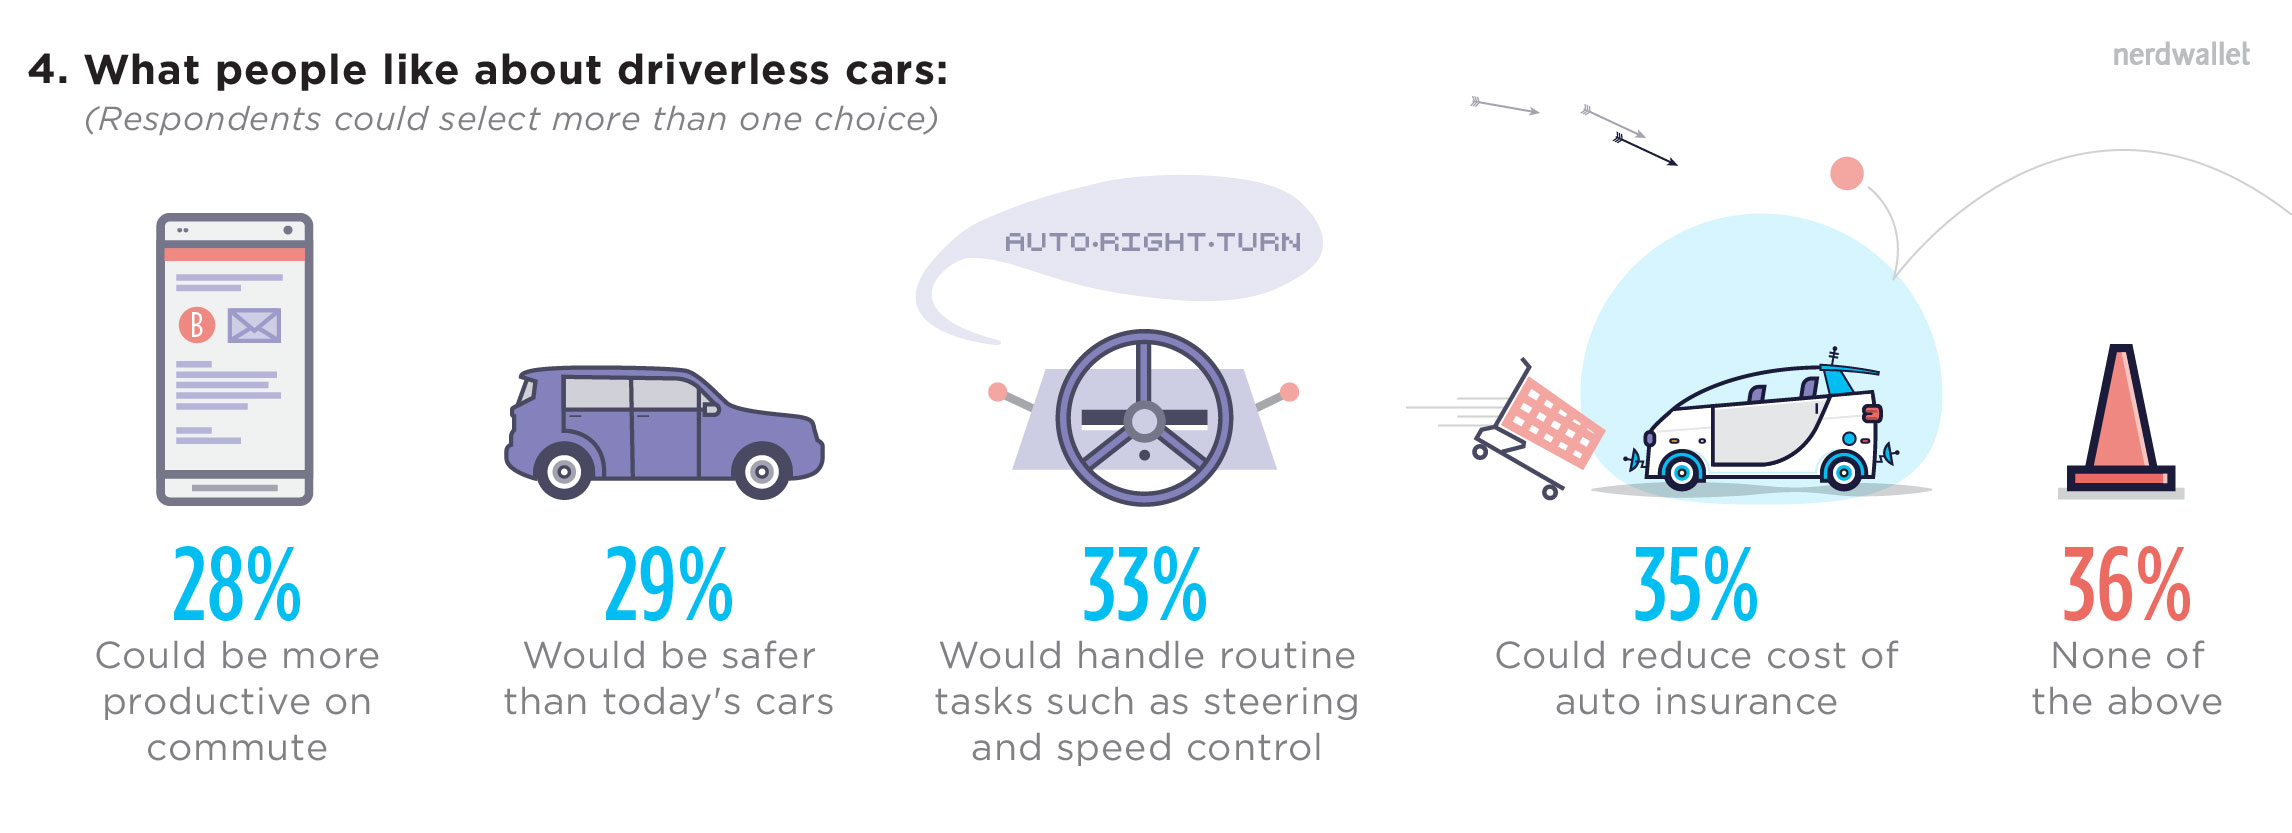 HWomen Say No Thanks to Driverless Cars, Survey Finds; Men Say Tell Me More Via:<a href=